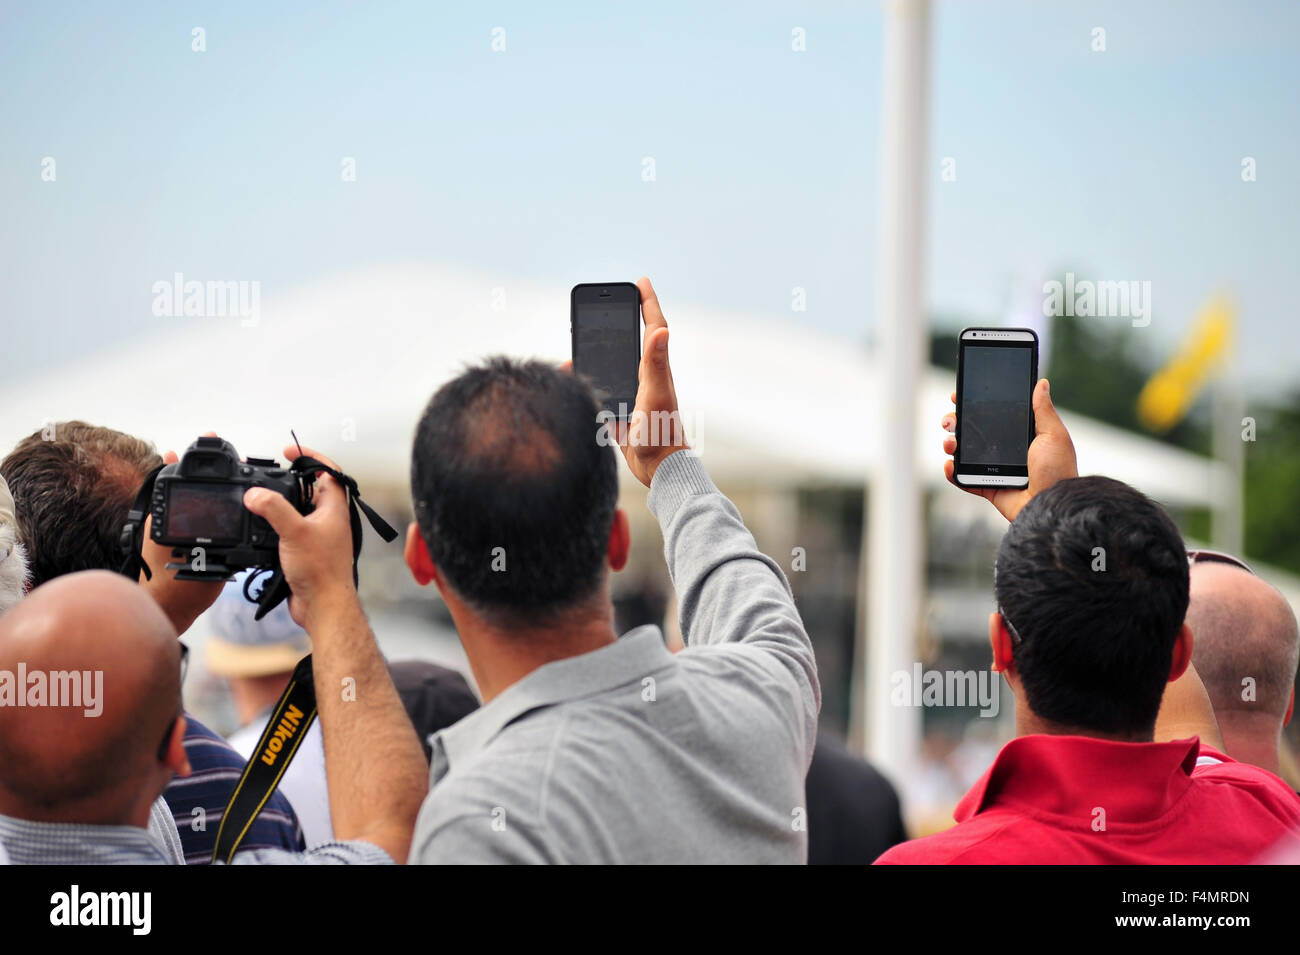 The crowd use cameras and smartphones to take photos at the Goodwood Festival of Speed in the UK. - Stock Image